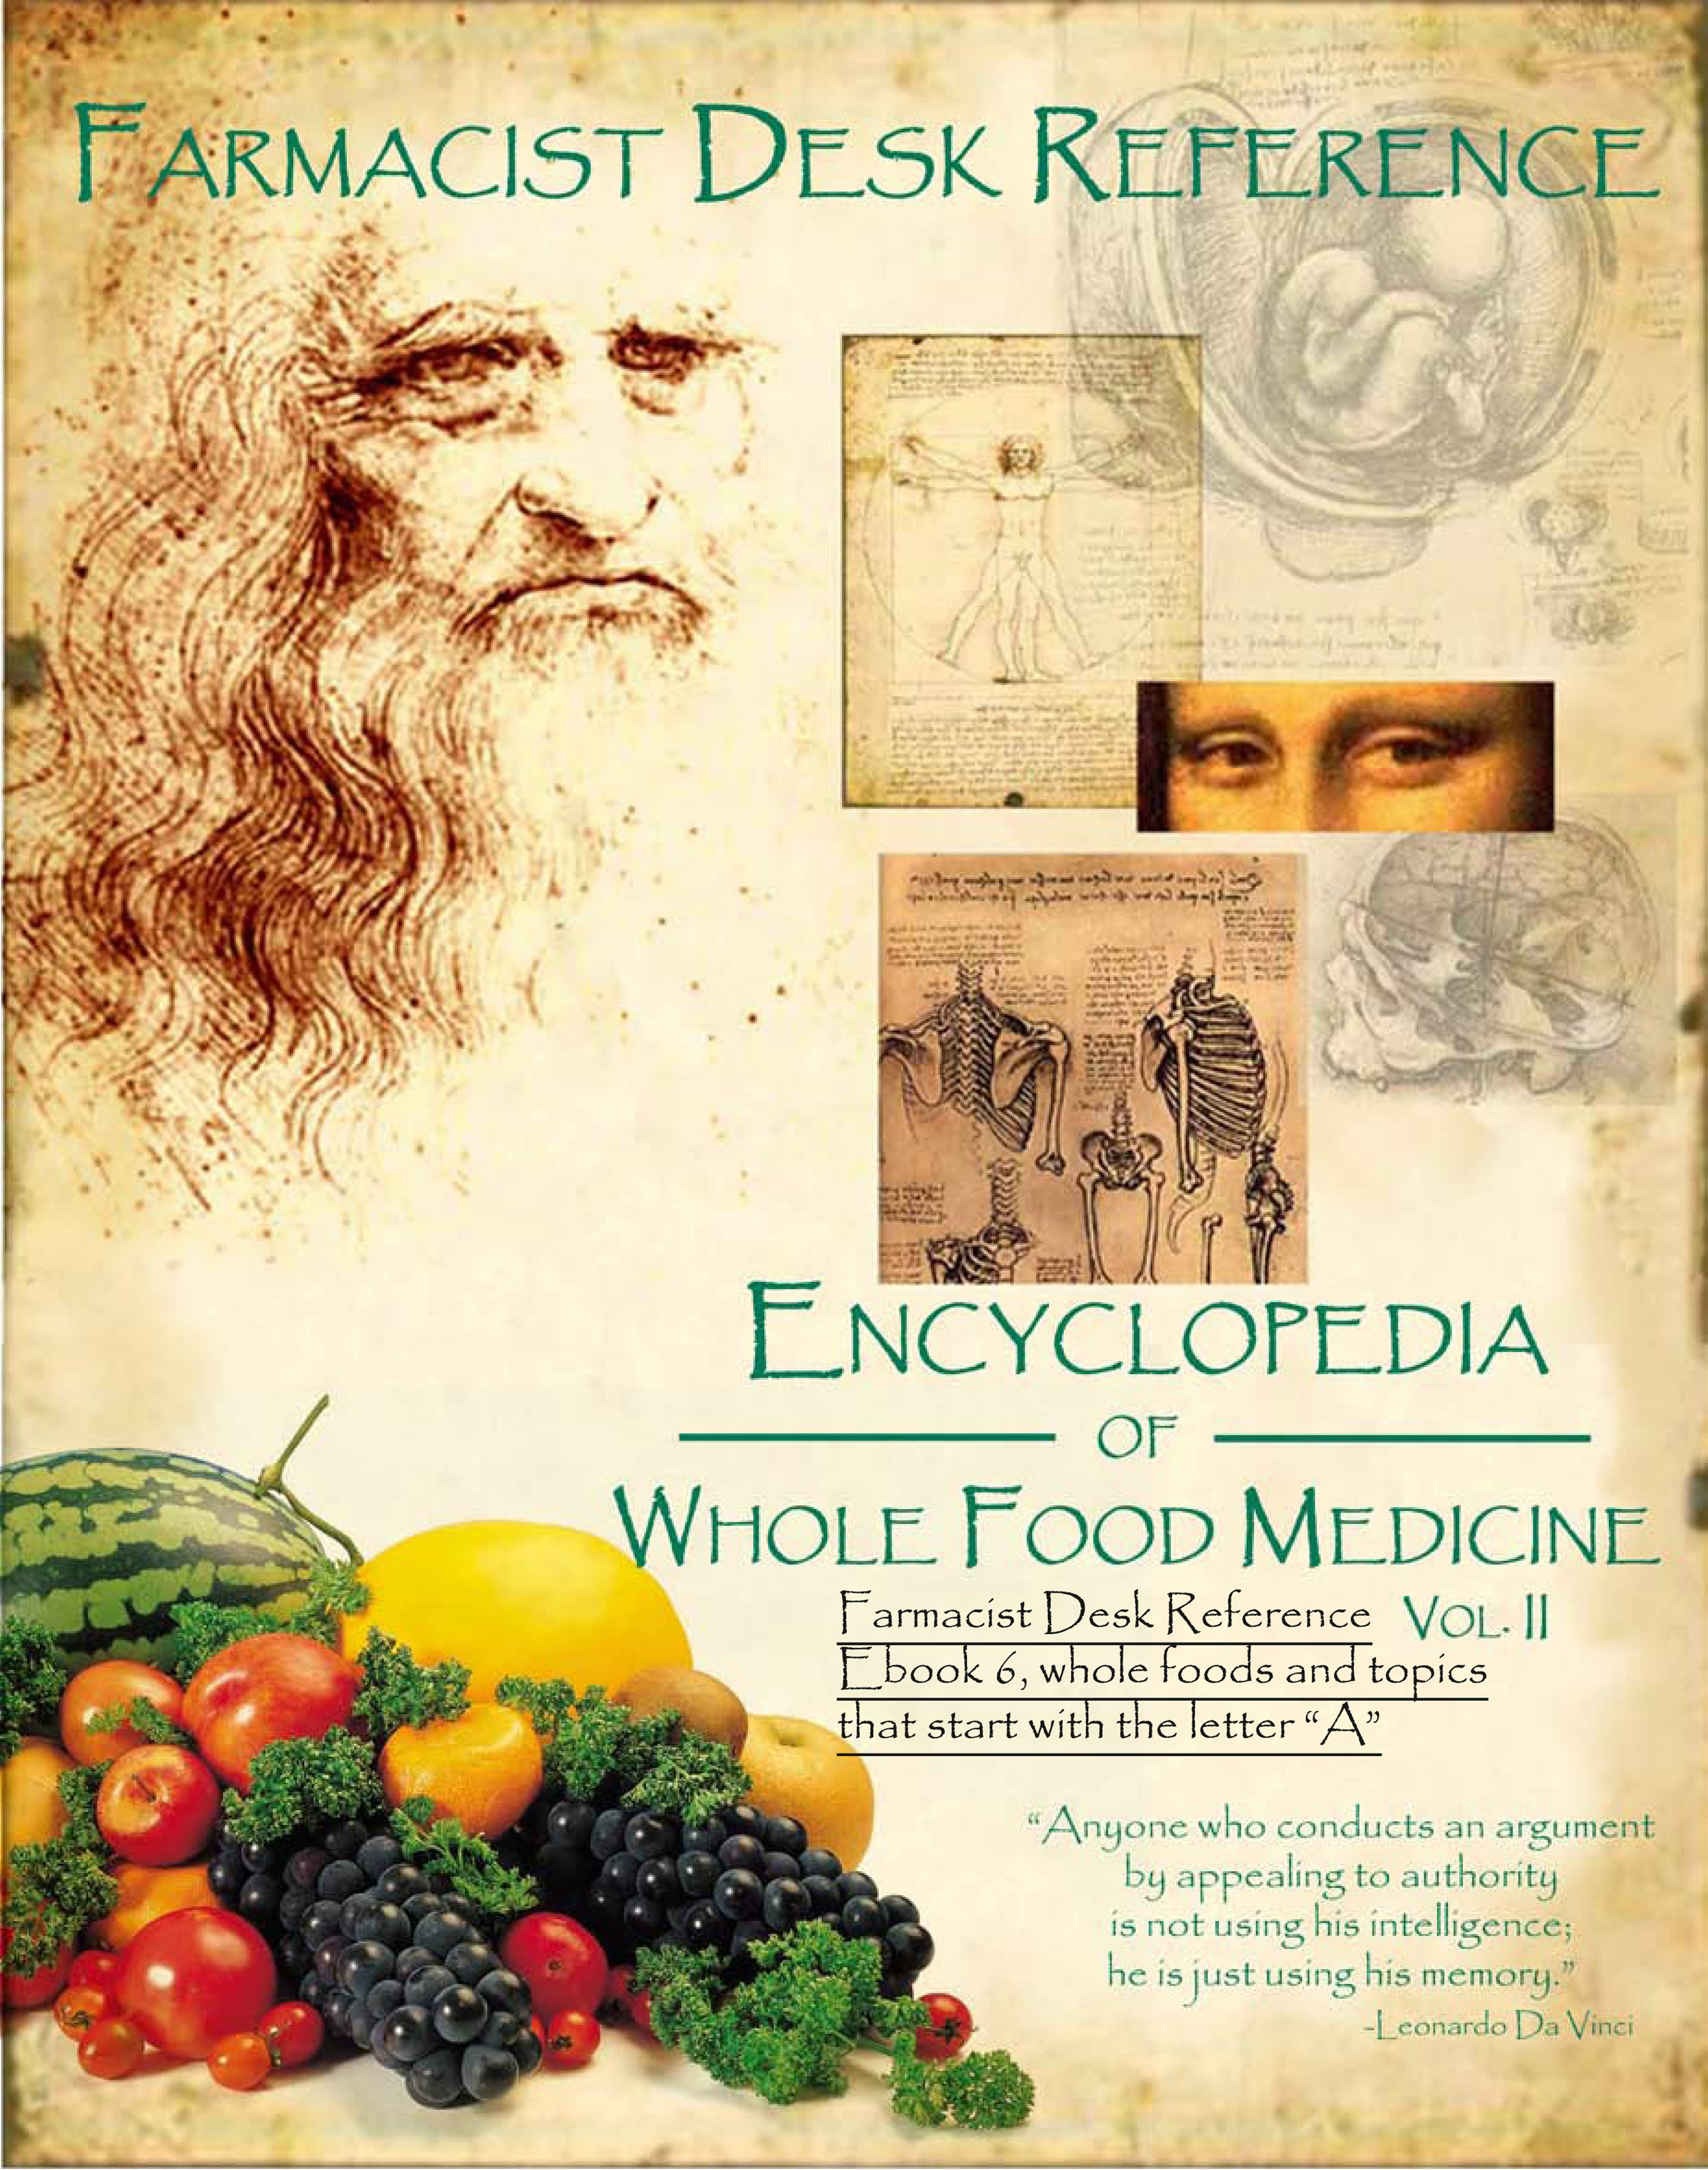 Farmacist Desk Reference Ebook 6, Whole Foods and topics that start with the letter A: Farmacist Desk Reference E book series